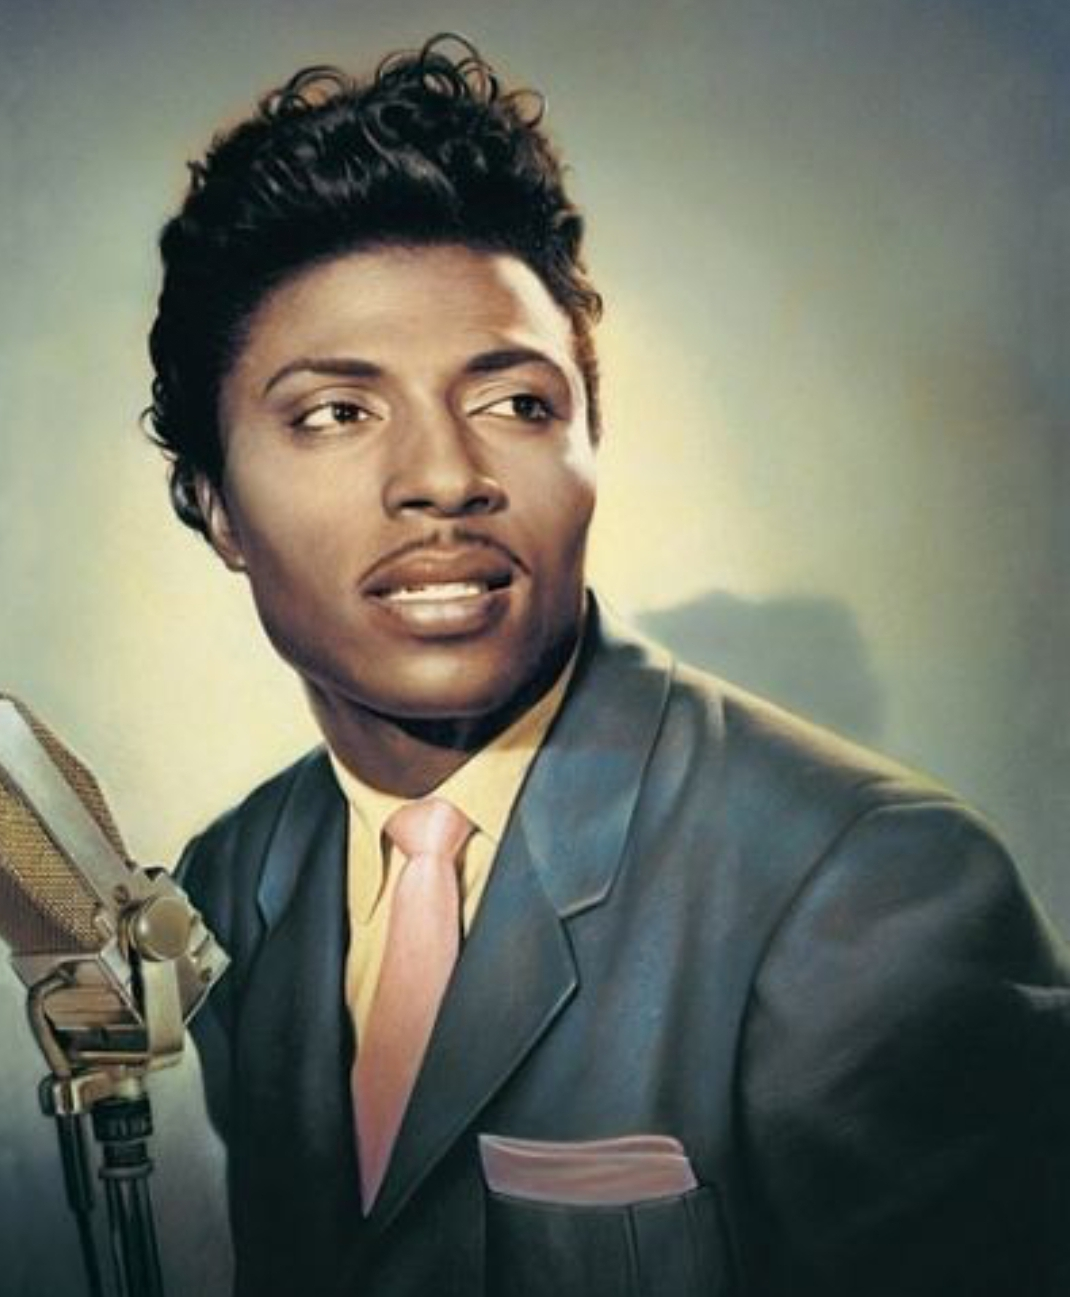 Founder of Rock 'n' Roll - Little Richard dies at 87